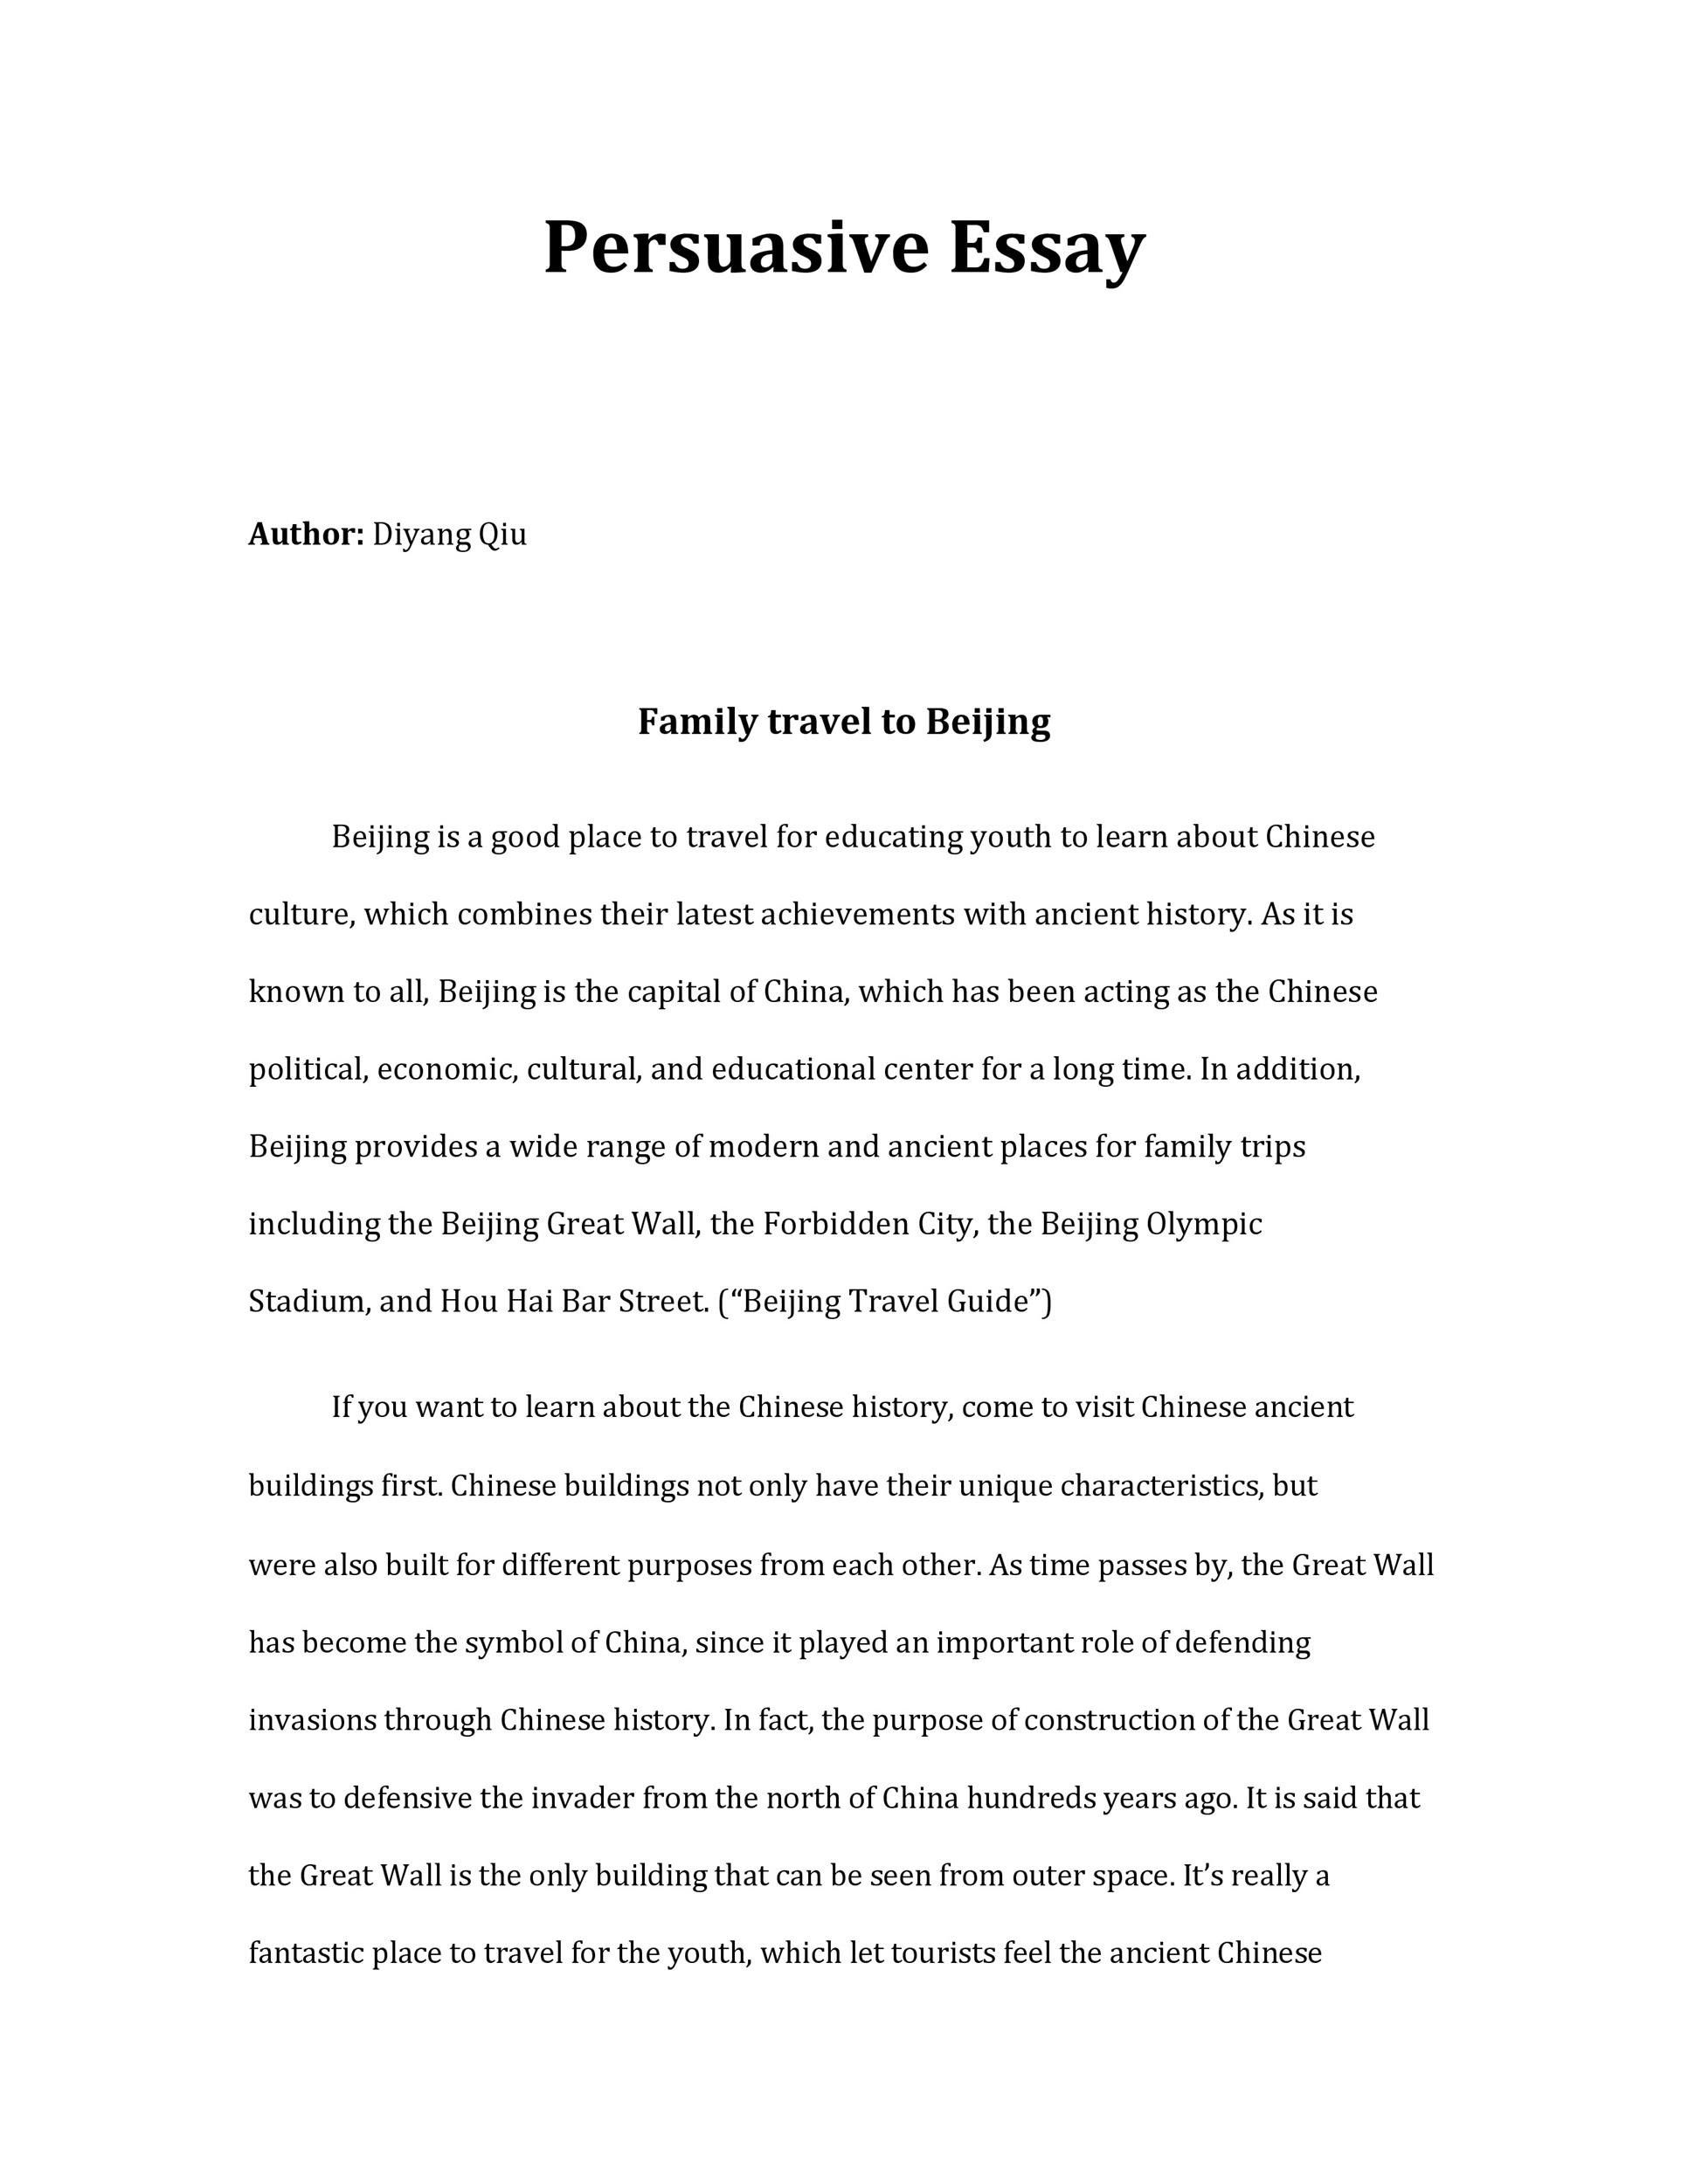 How To Write A Persuasive Essay